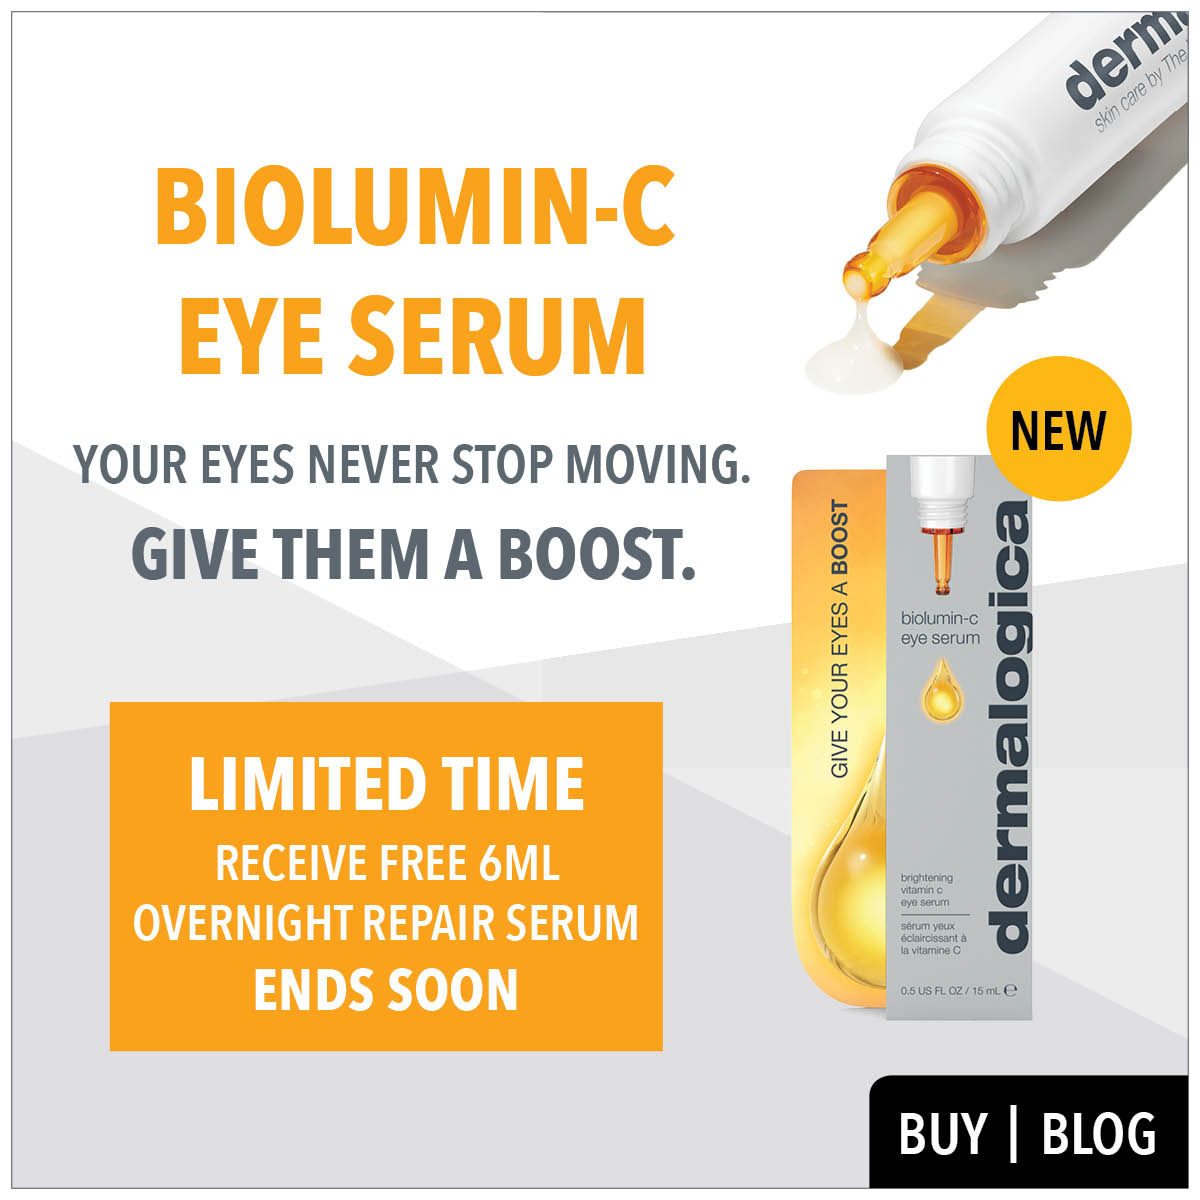 dermalogica biolumin-c eye serum from prodermal